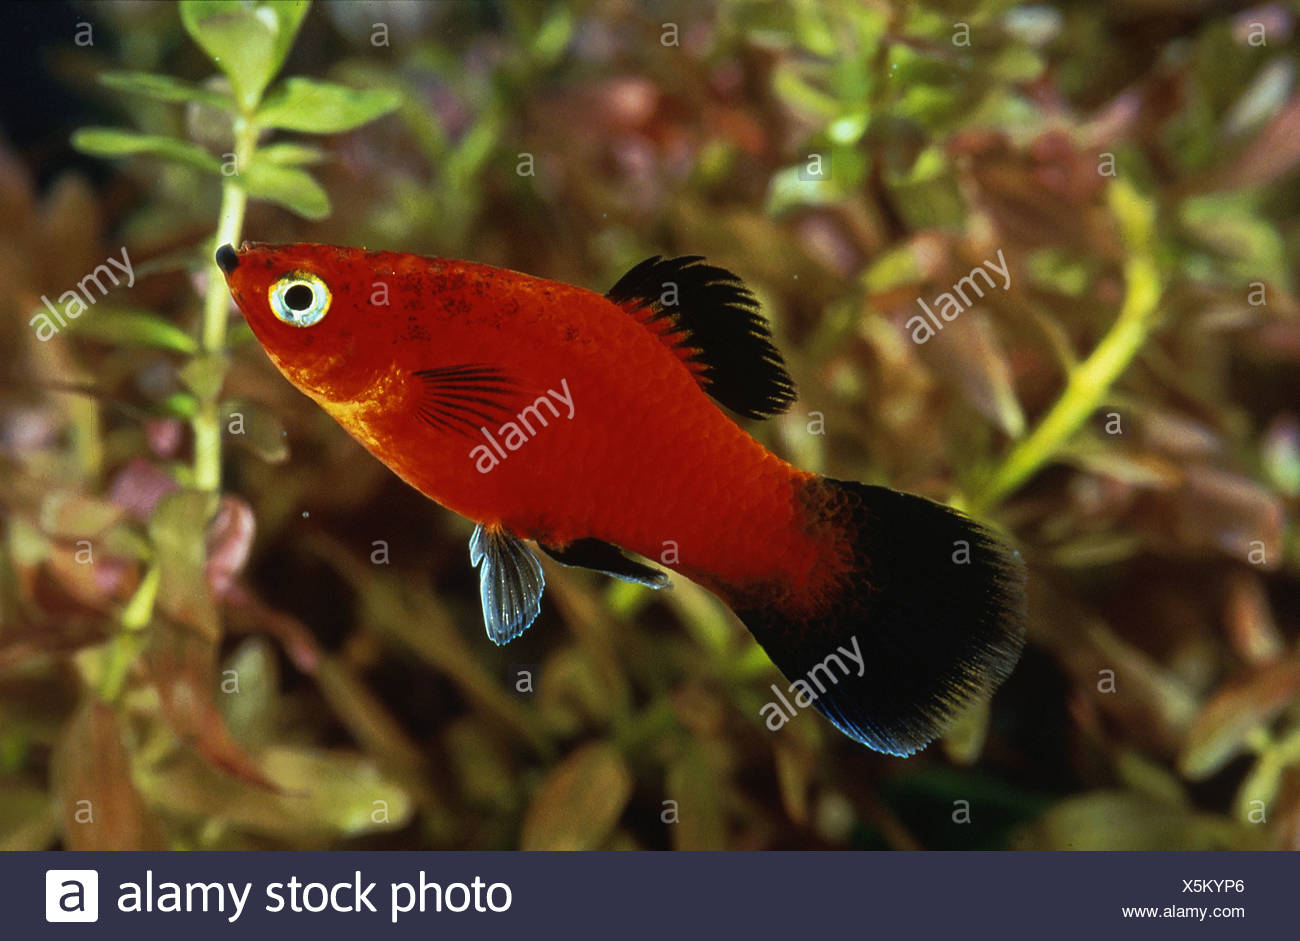 Platy Stock Photos & Platy Stock Images - Page 3 - Alamy